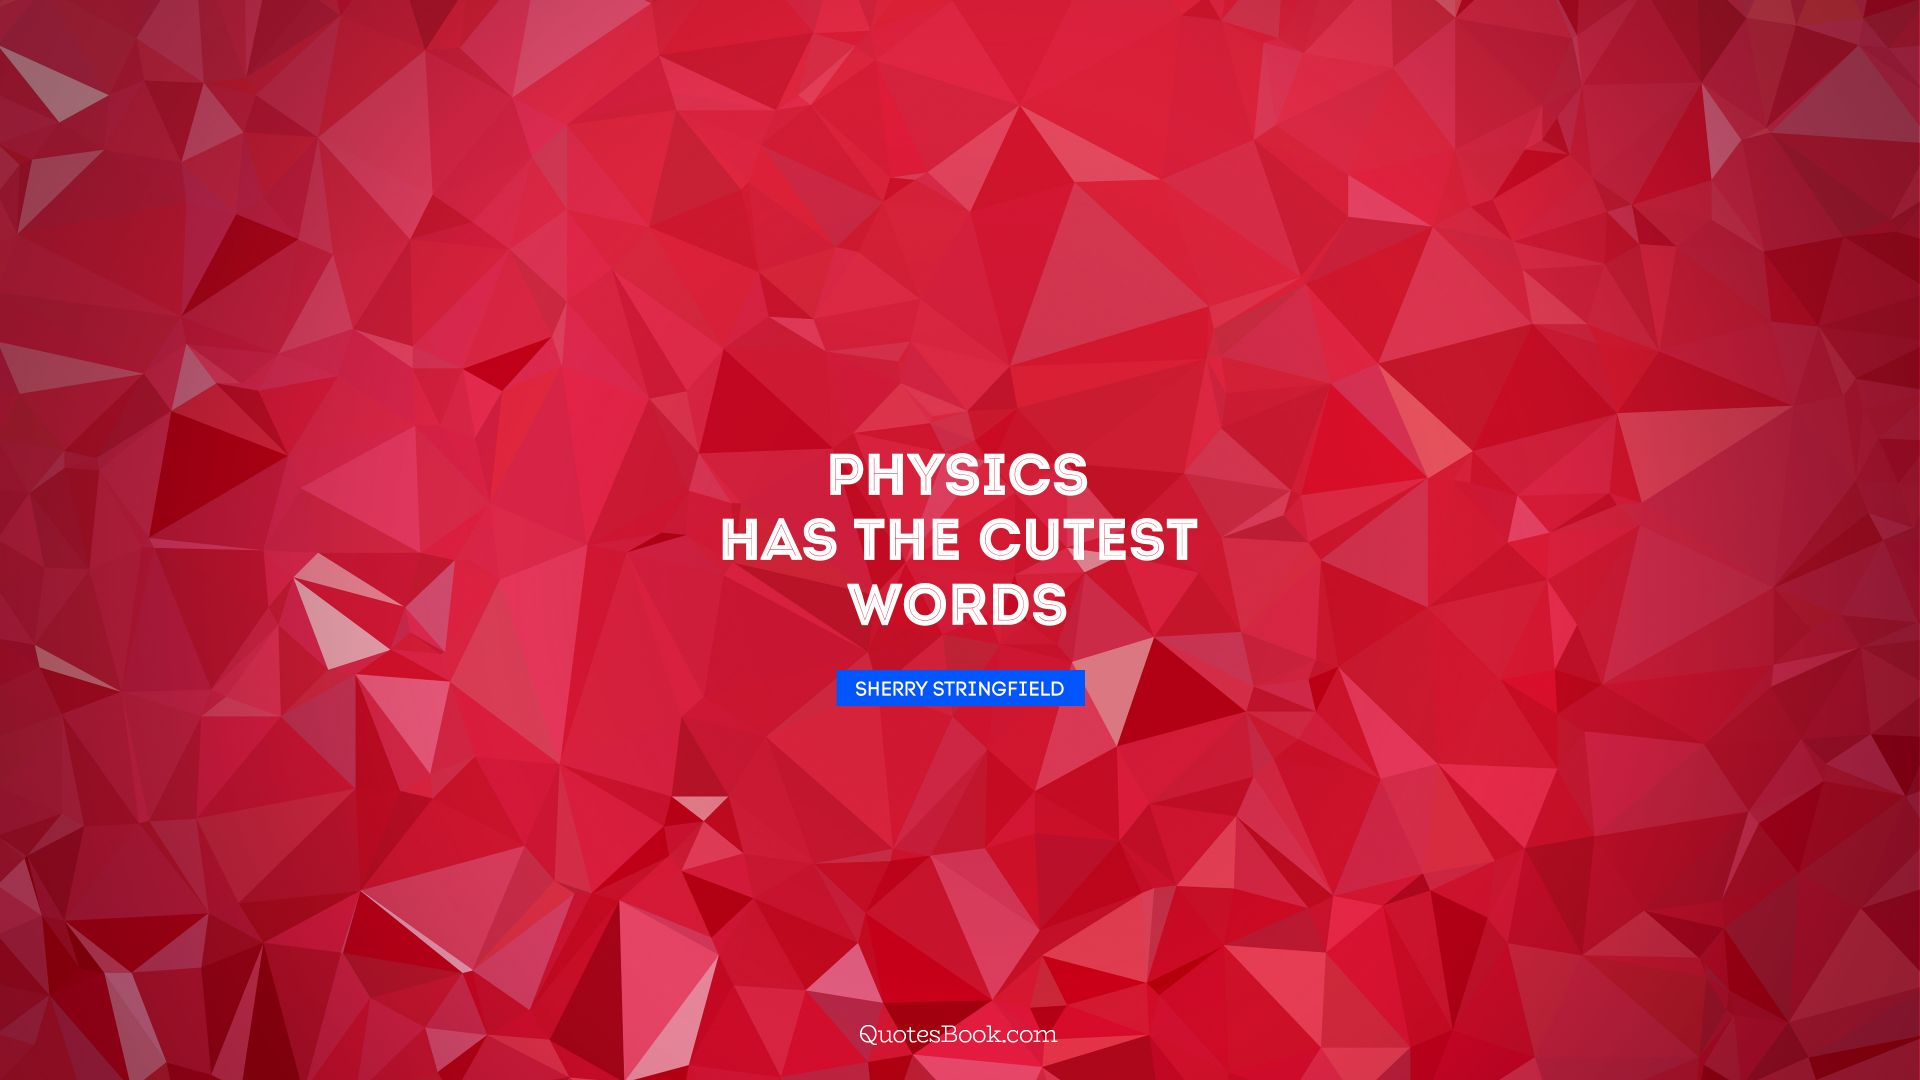 Physics has the cutest words. - Quote by Sherry Stringfield